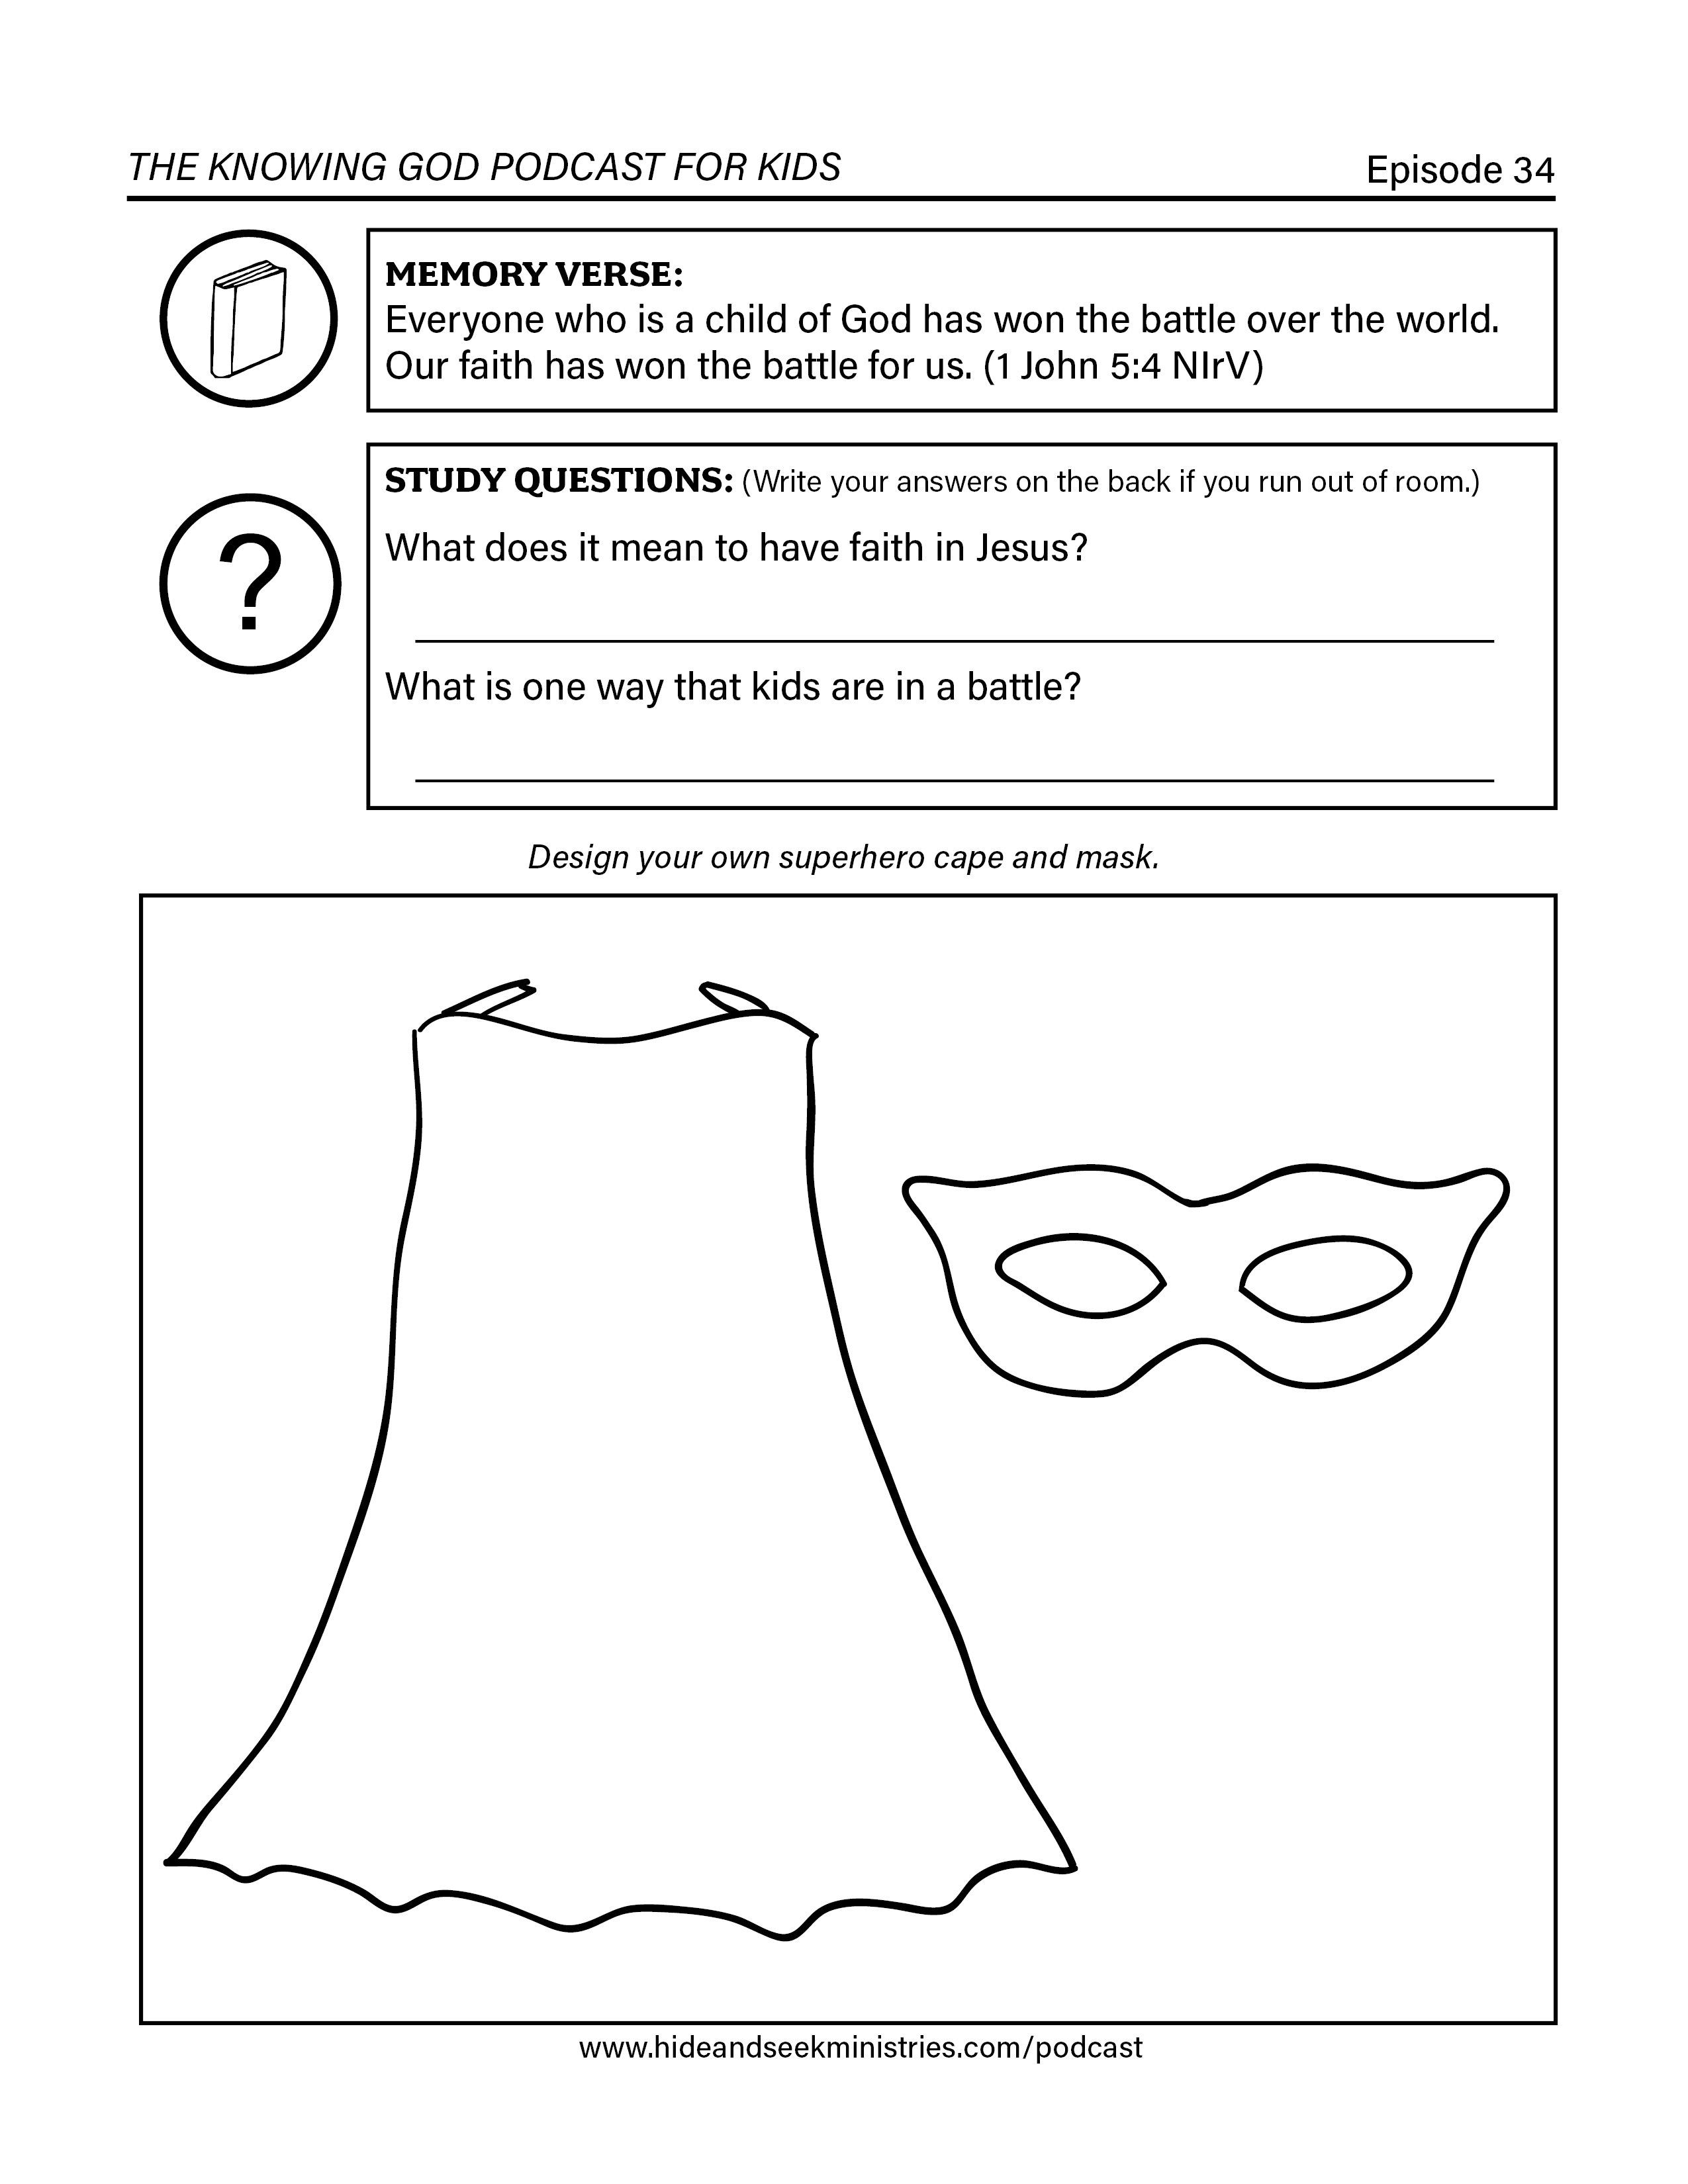 Faith Worksheet Free Bible Printables Bible Printables Bible Lessons For Kids [ 3300 x 2550 Pixel ]